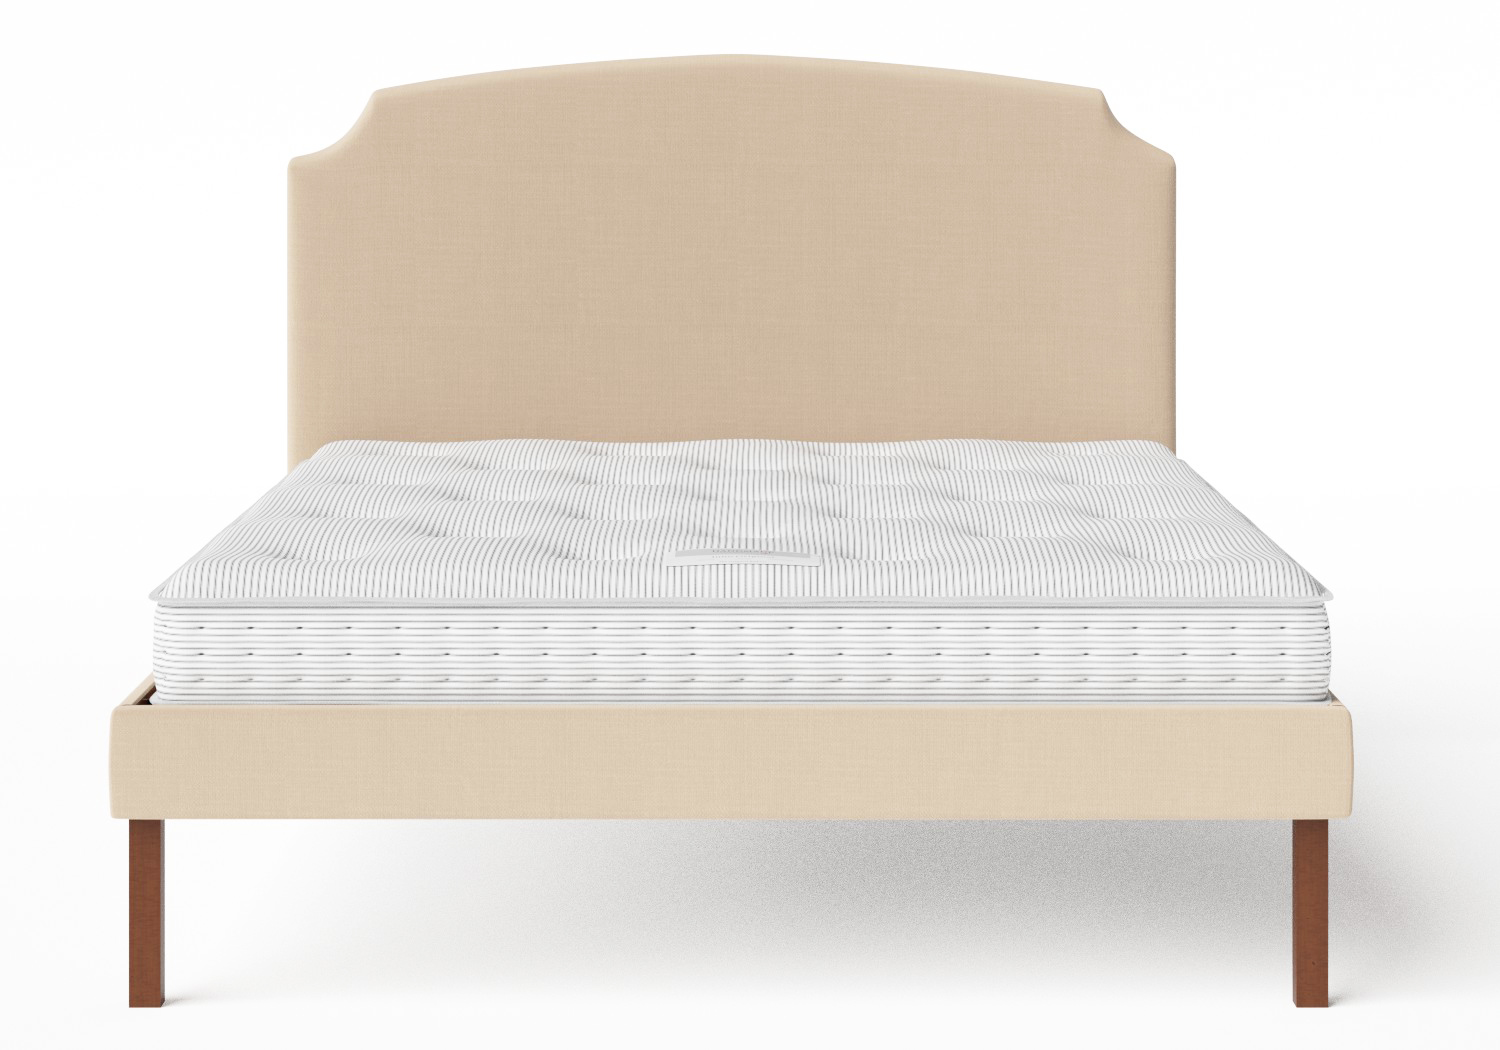 Kobe Upholstered Bed in Natural fabric shown with Juno 1 mattress